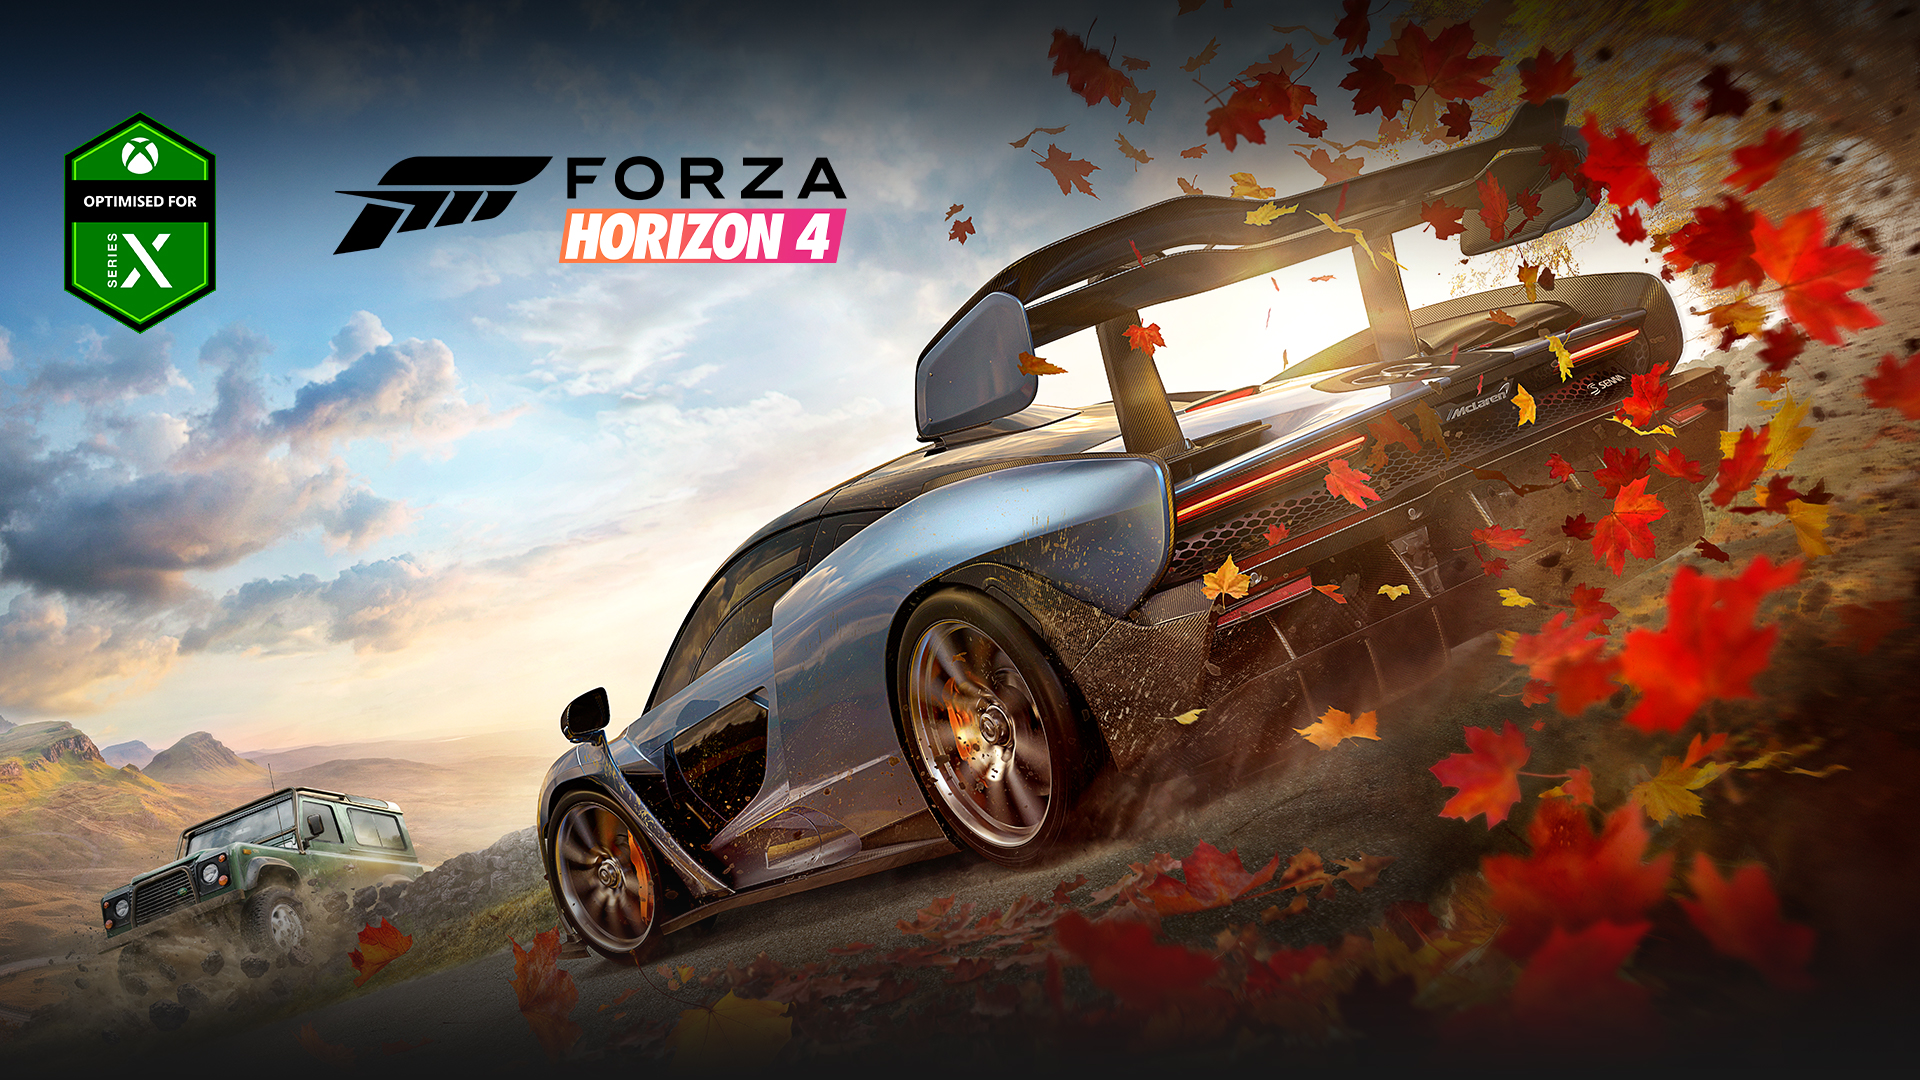 Optimised for Xbox Series X, Forza Horizon 4, two cars with leaves behind one of them